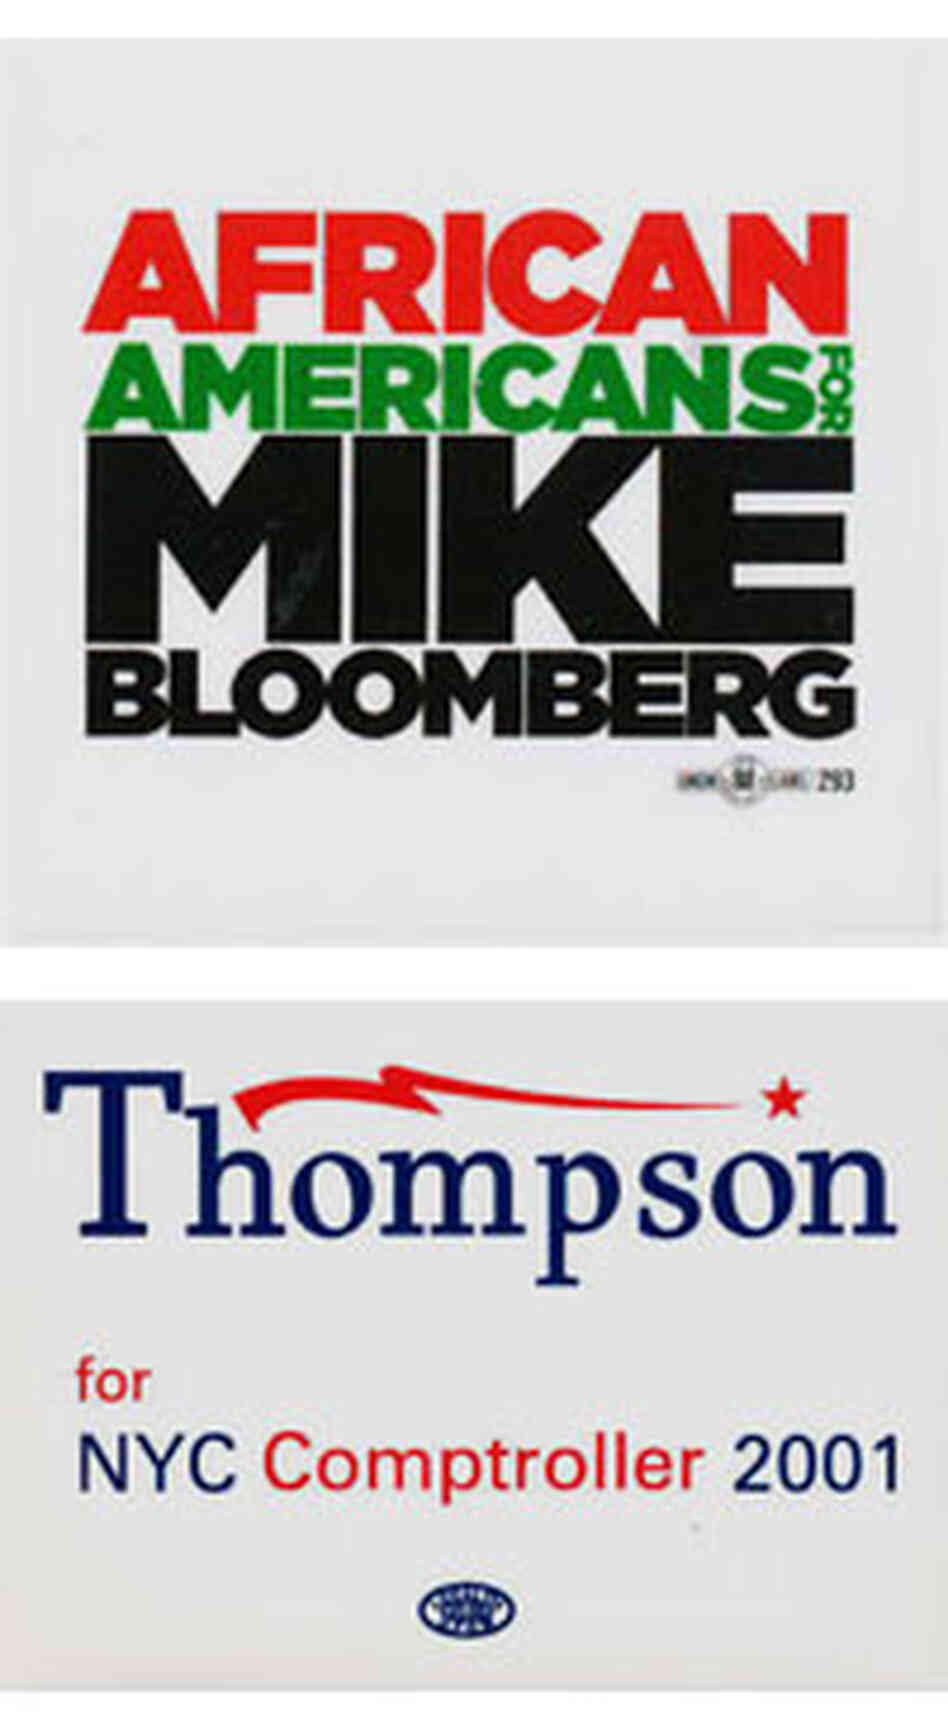 Bloomberg / Thompson